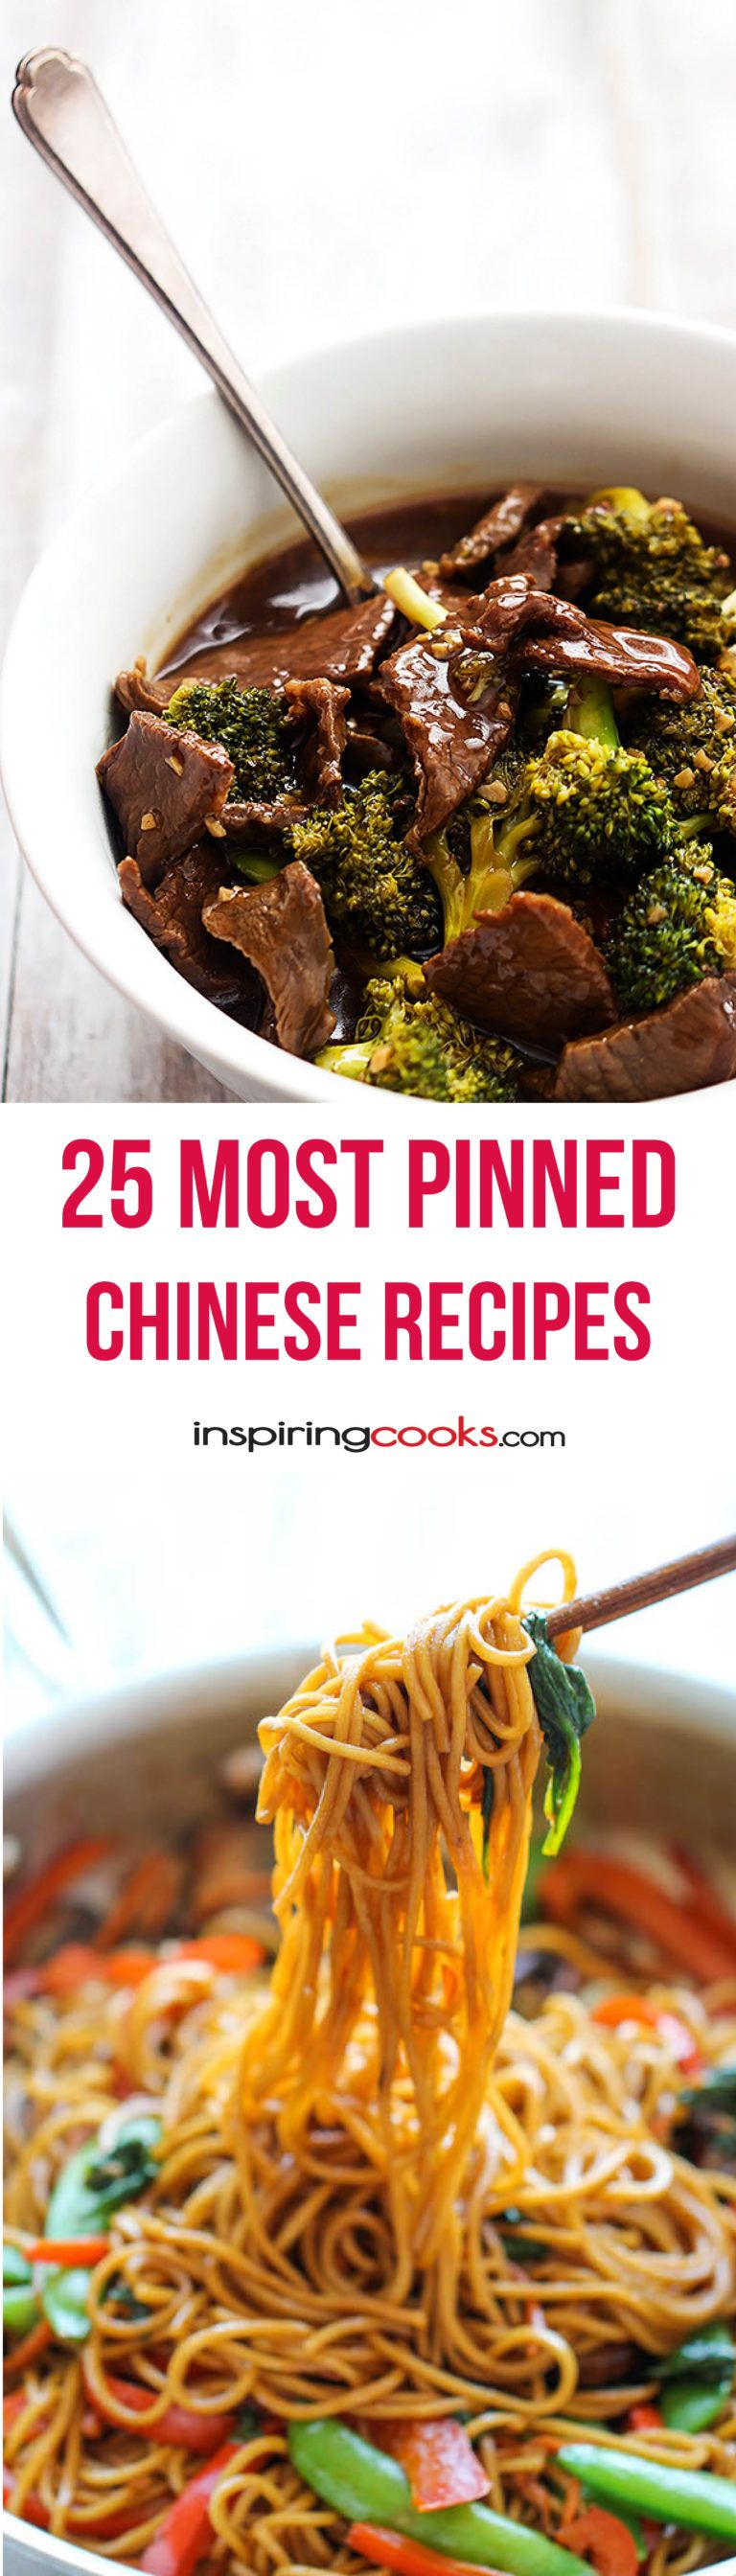 The 25 most pinned chinese recipes on pinterest chinese recipes 25 most pinned chinese recipes all of these have been pinned at least times forumfinder Choice Image